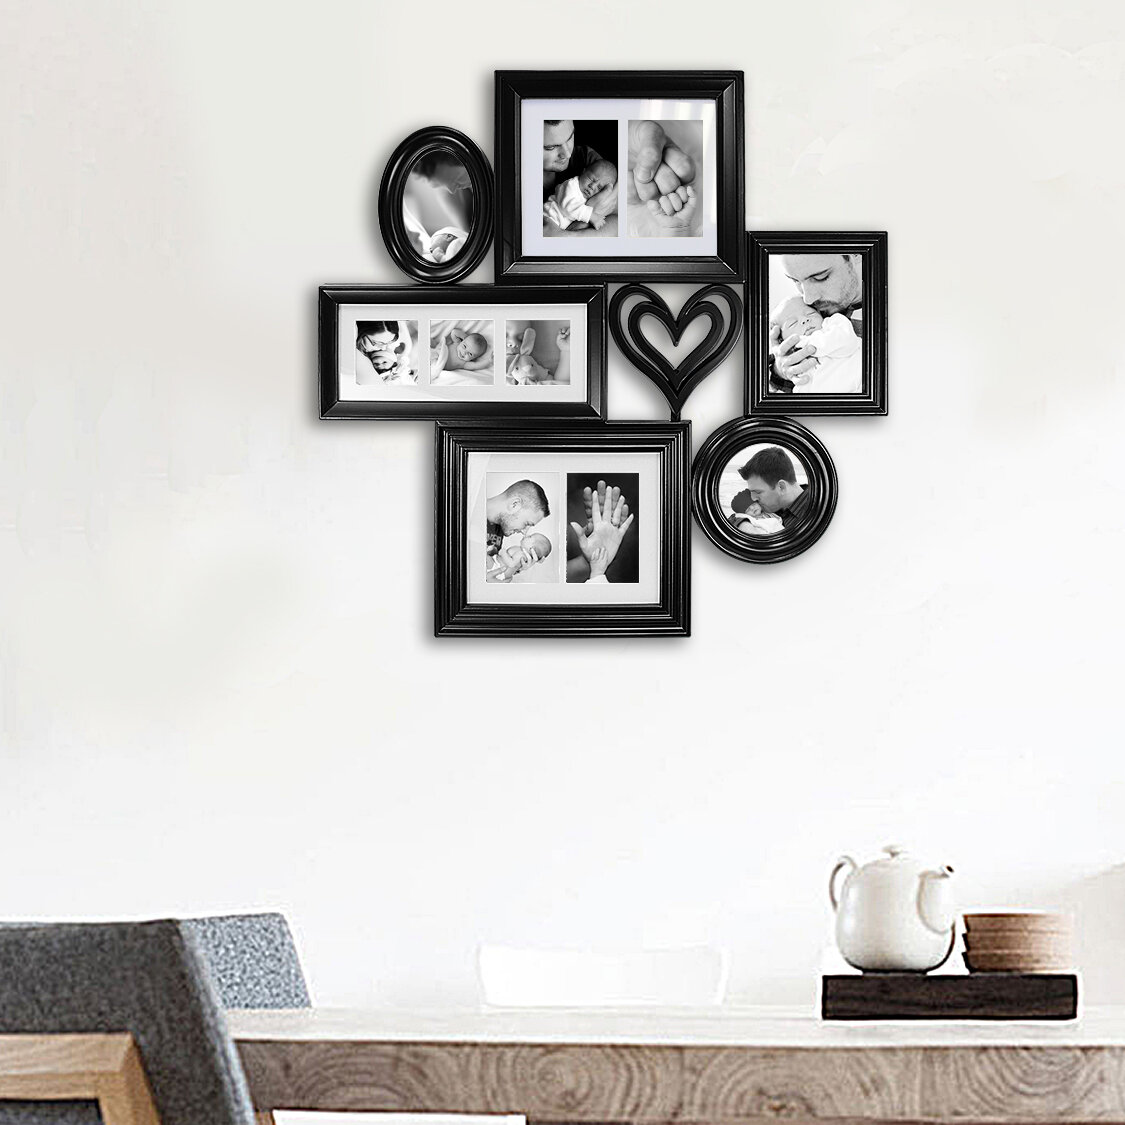 Friend Red Barrel Studio Collage Picture Frames You Ll Love In 2021 Wayfair